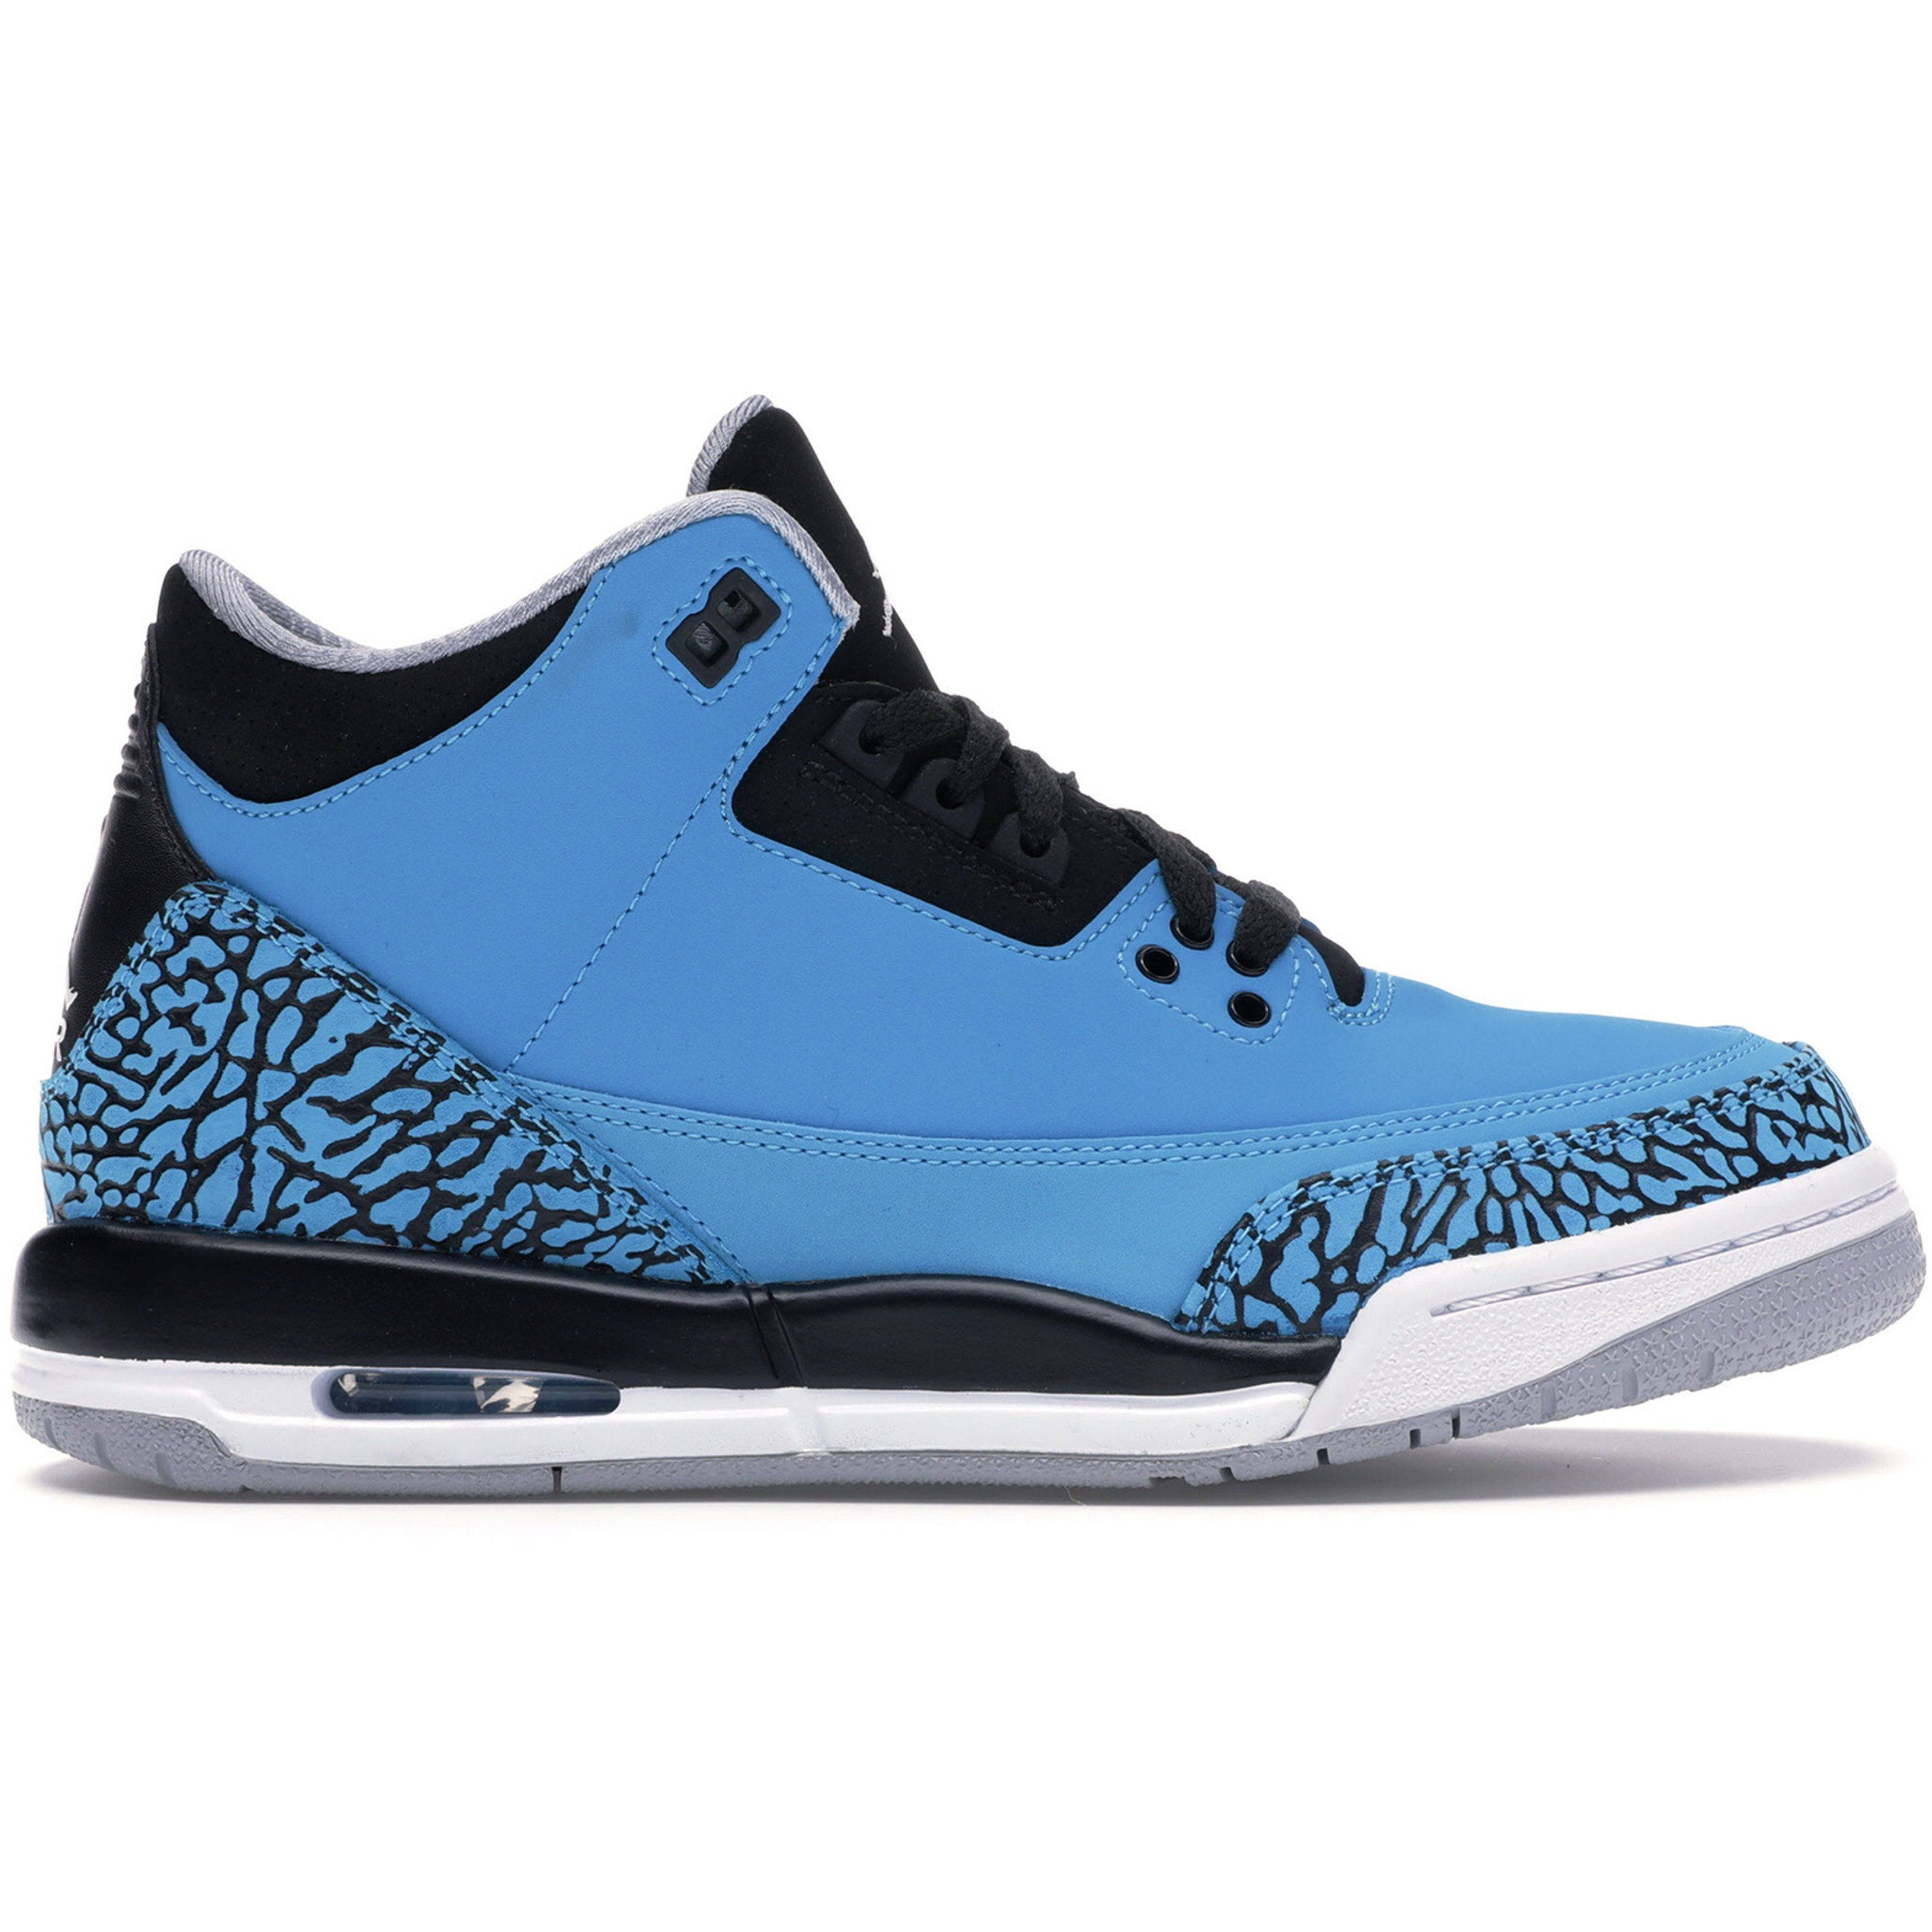 Jordan 3 Retro Powder Blue (GS) (398614-406)